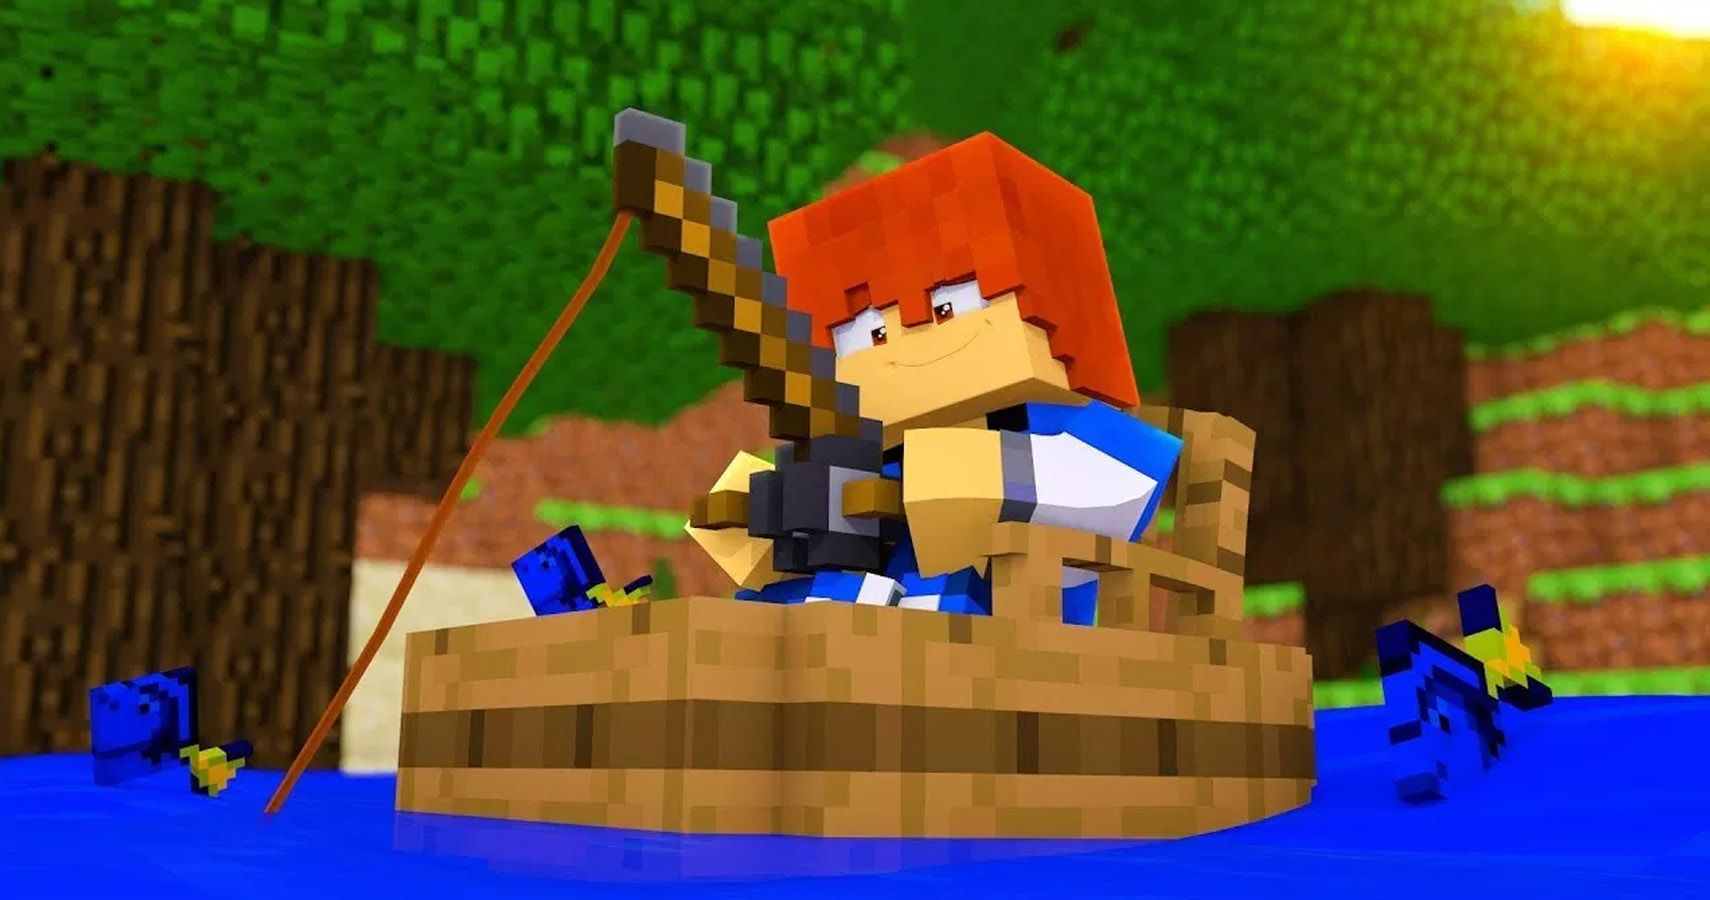 25 Things Most Minecraft Players Don't Realize They're Doing Wrong